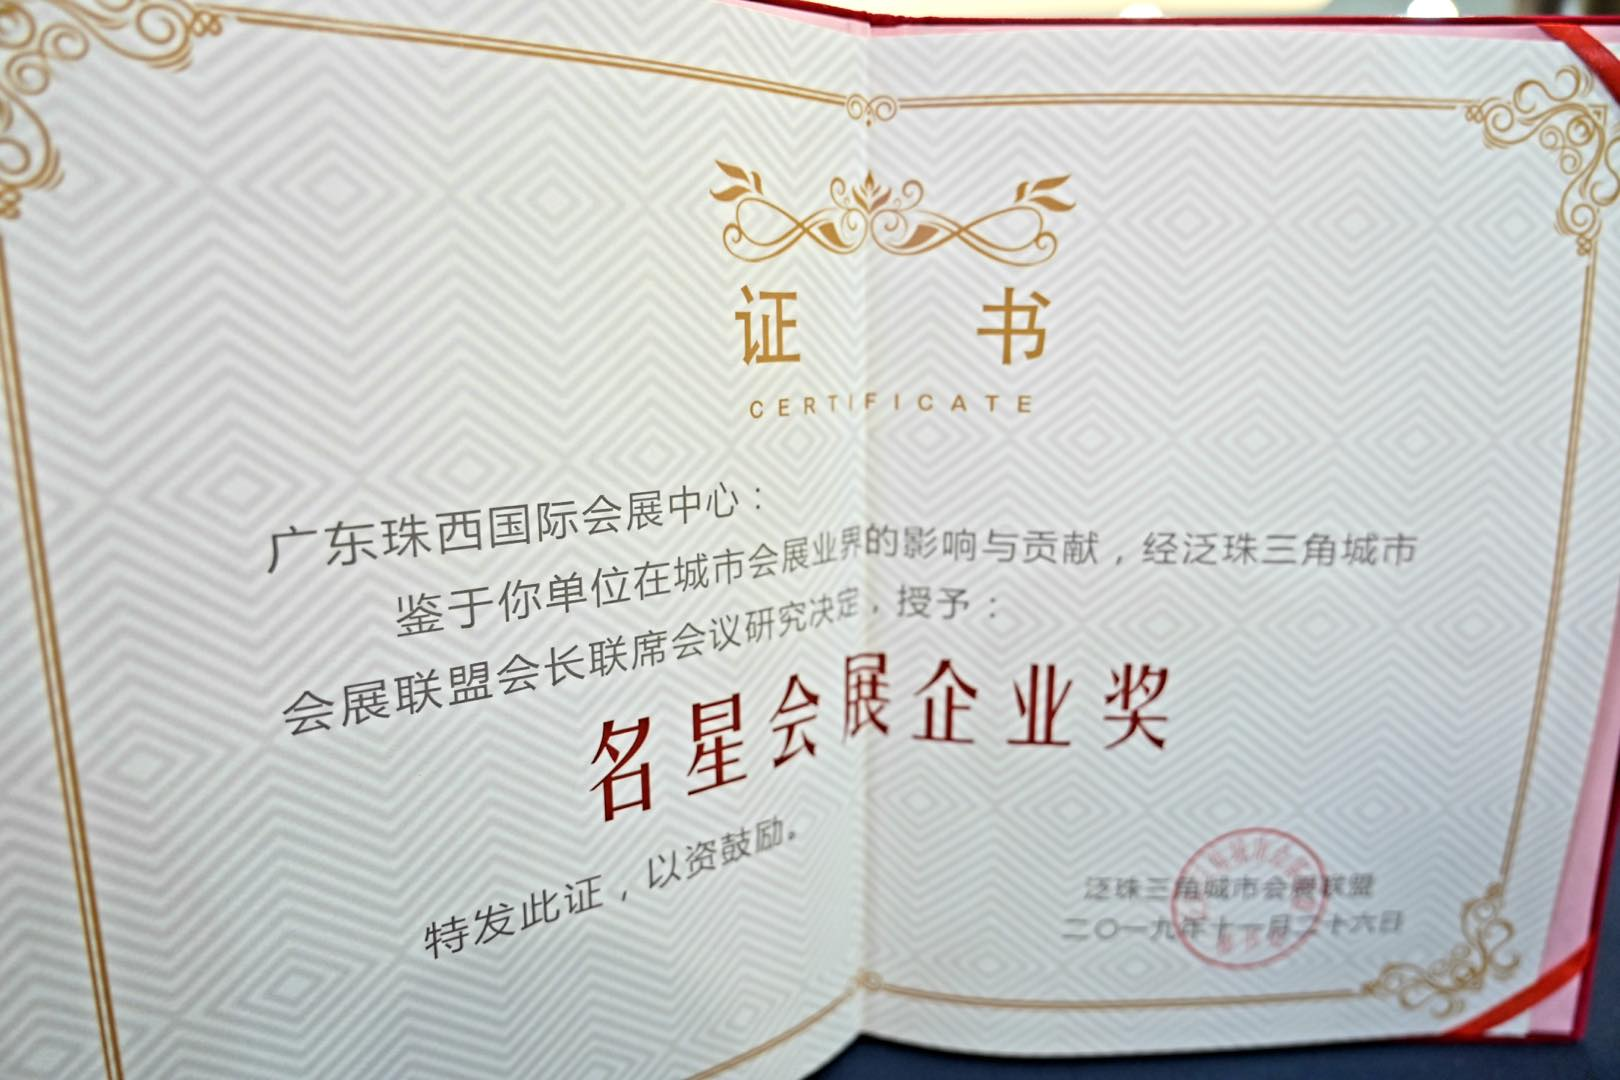 Fruitful! Guangdong zhuhai international convention and exhibition center won the star exhibition enterprise award